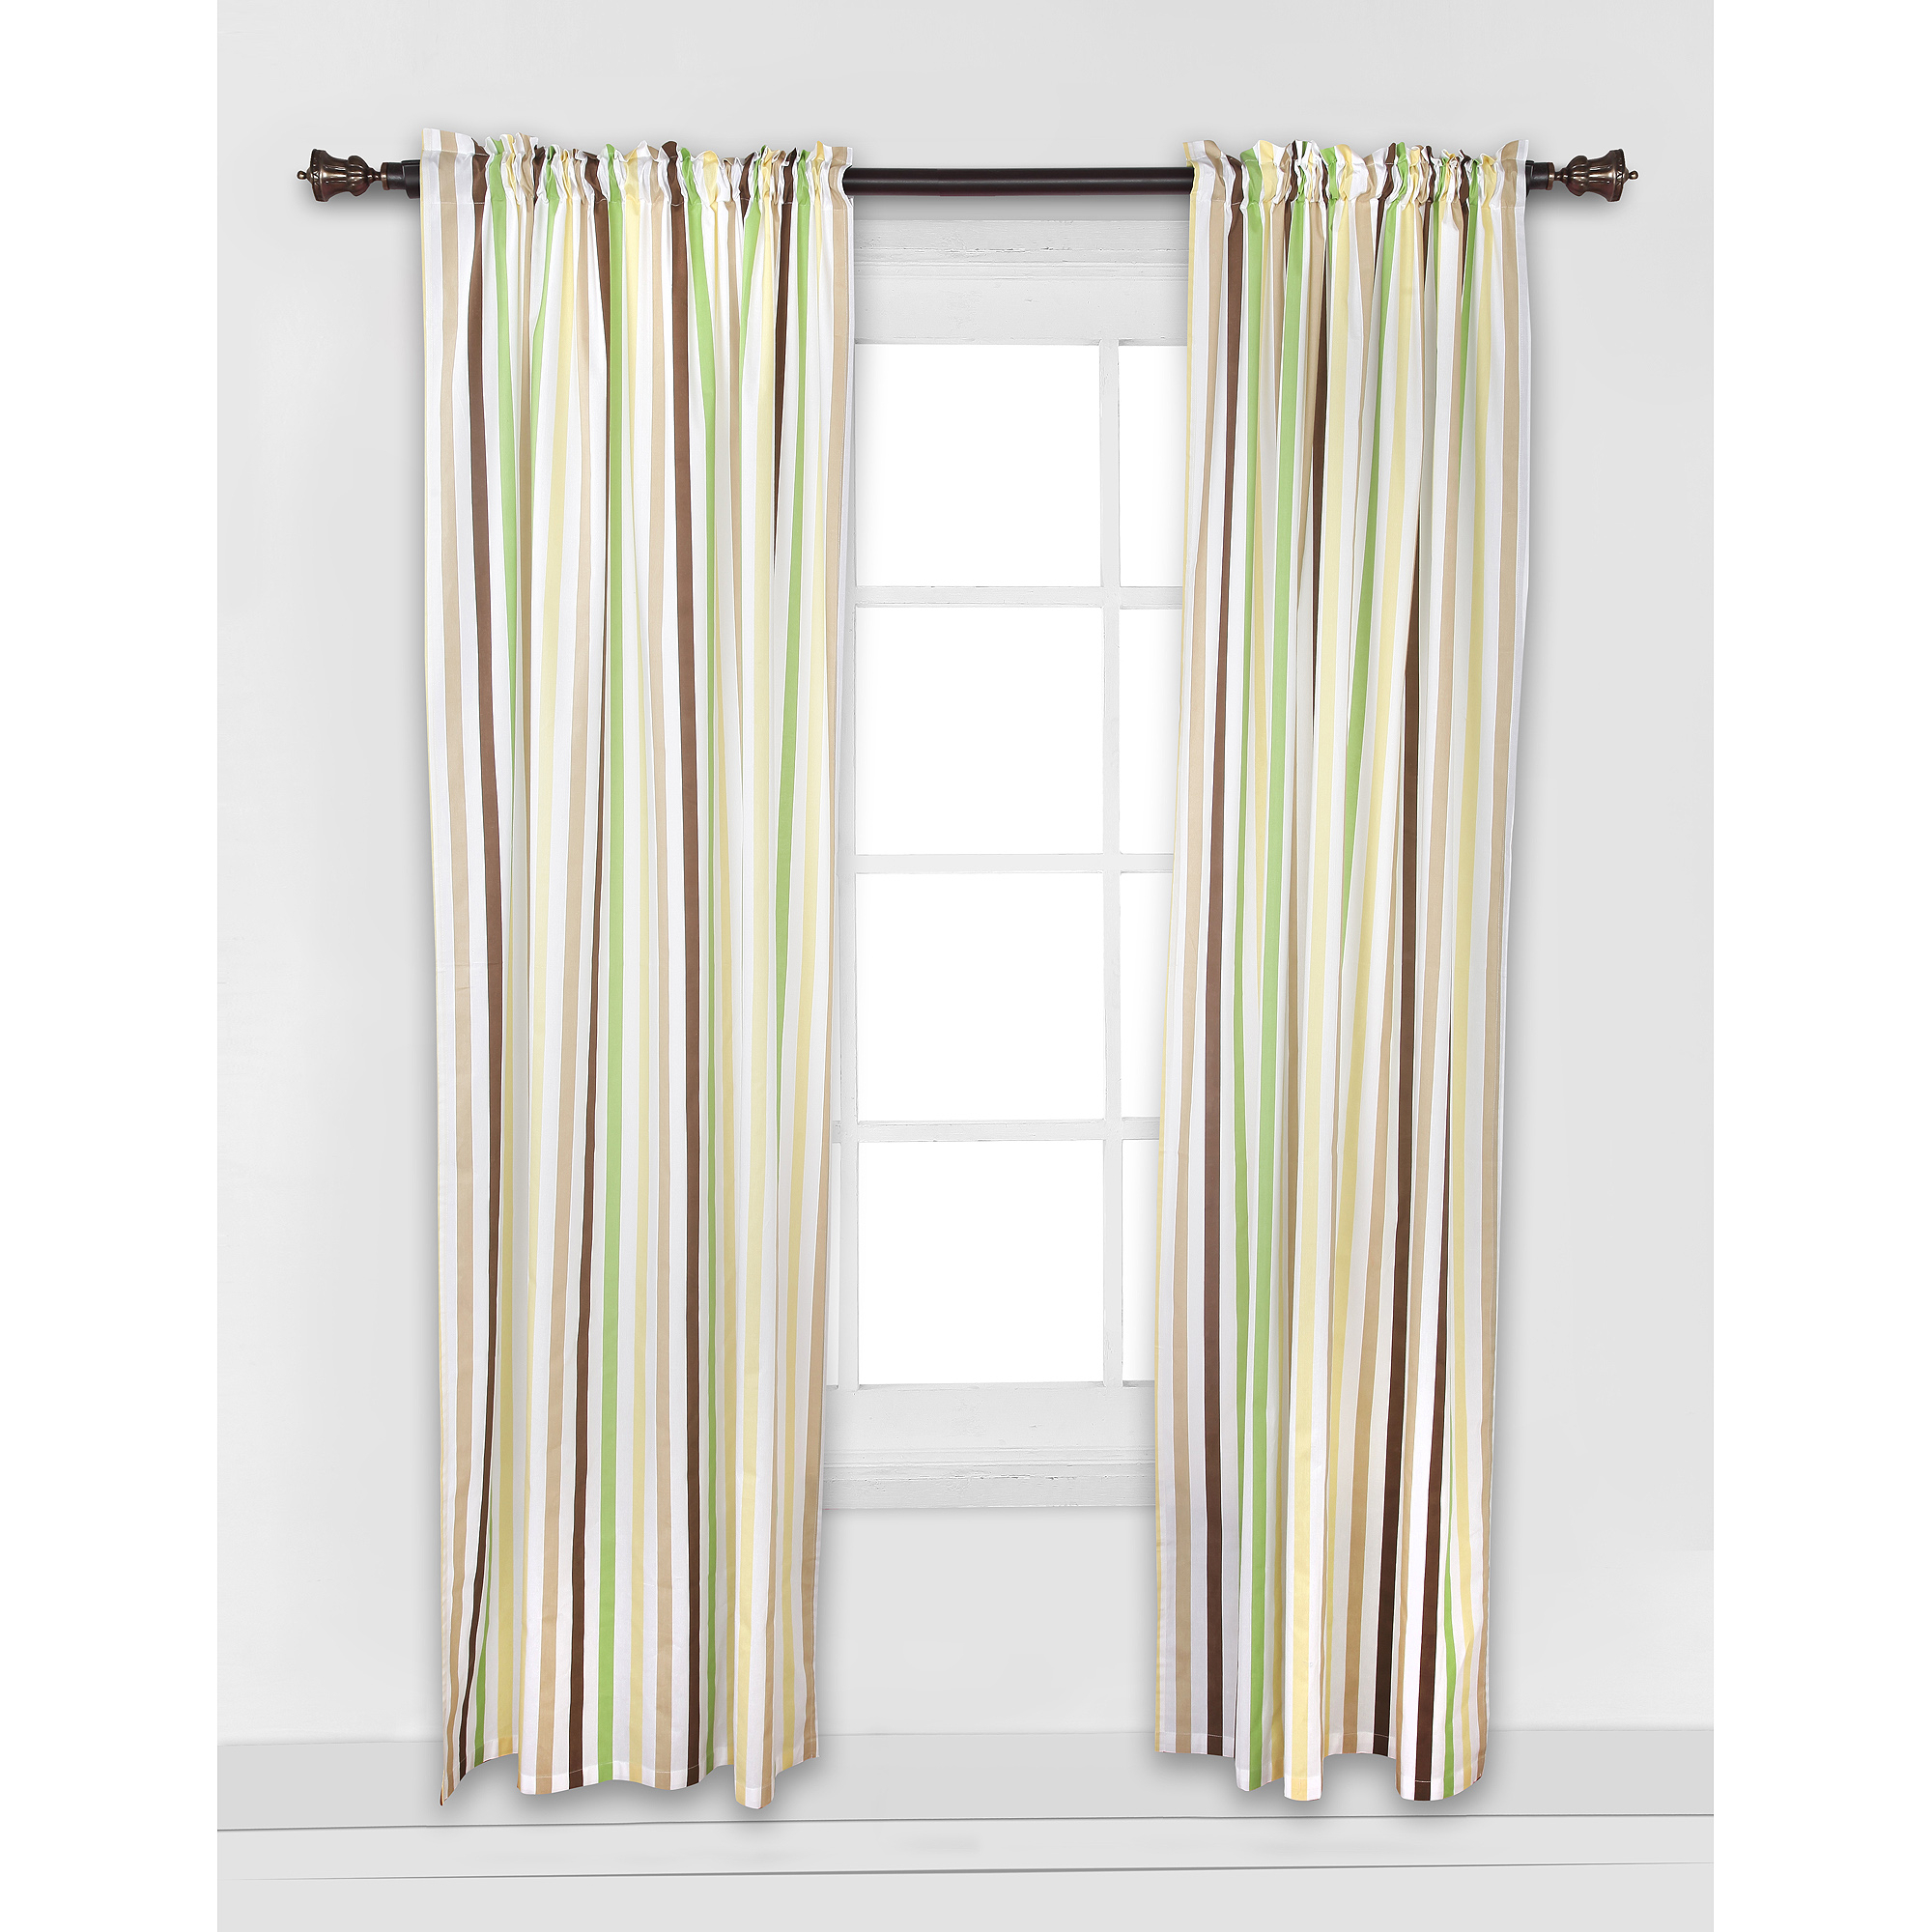 Bed Bath N More Ivory Micro Striped Semi Sheer Window Curtain Pieces – Tiers, Valance And Swag Options Inside Micro Striped Semi Sheer Window Curtain Pieces (View 12 of 20)